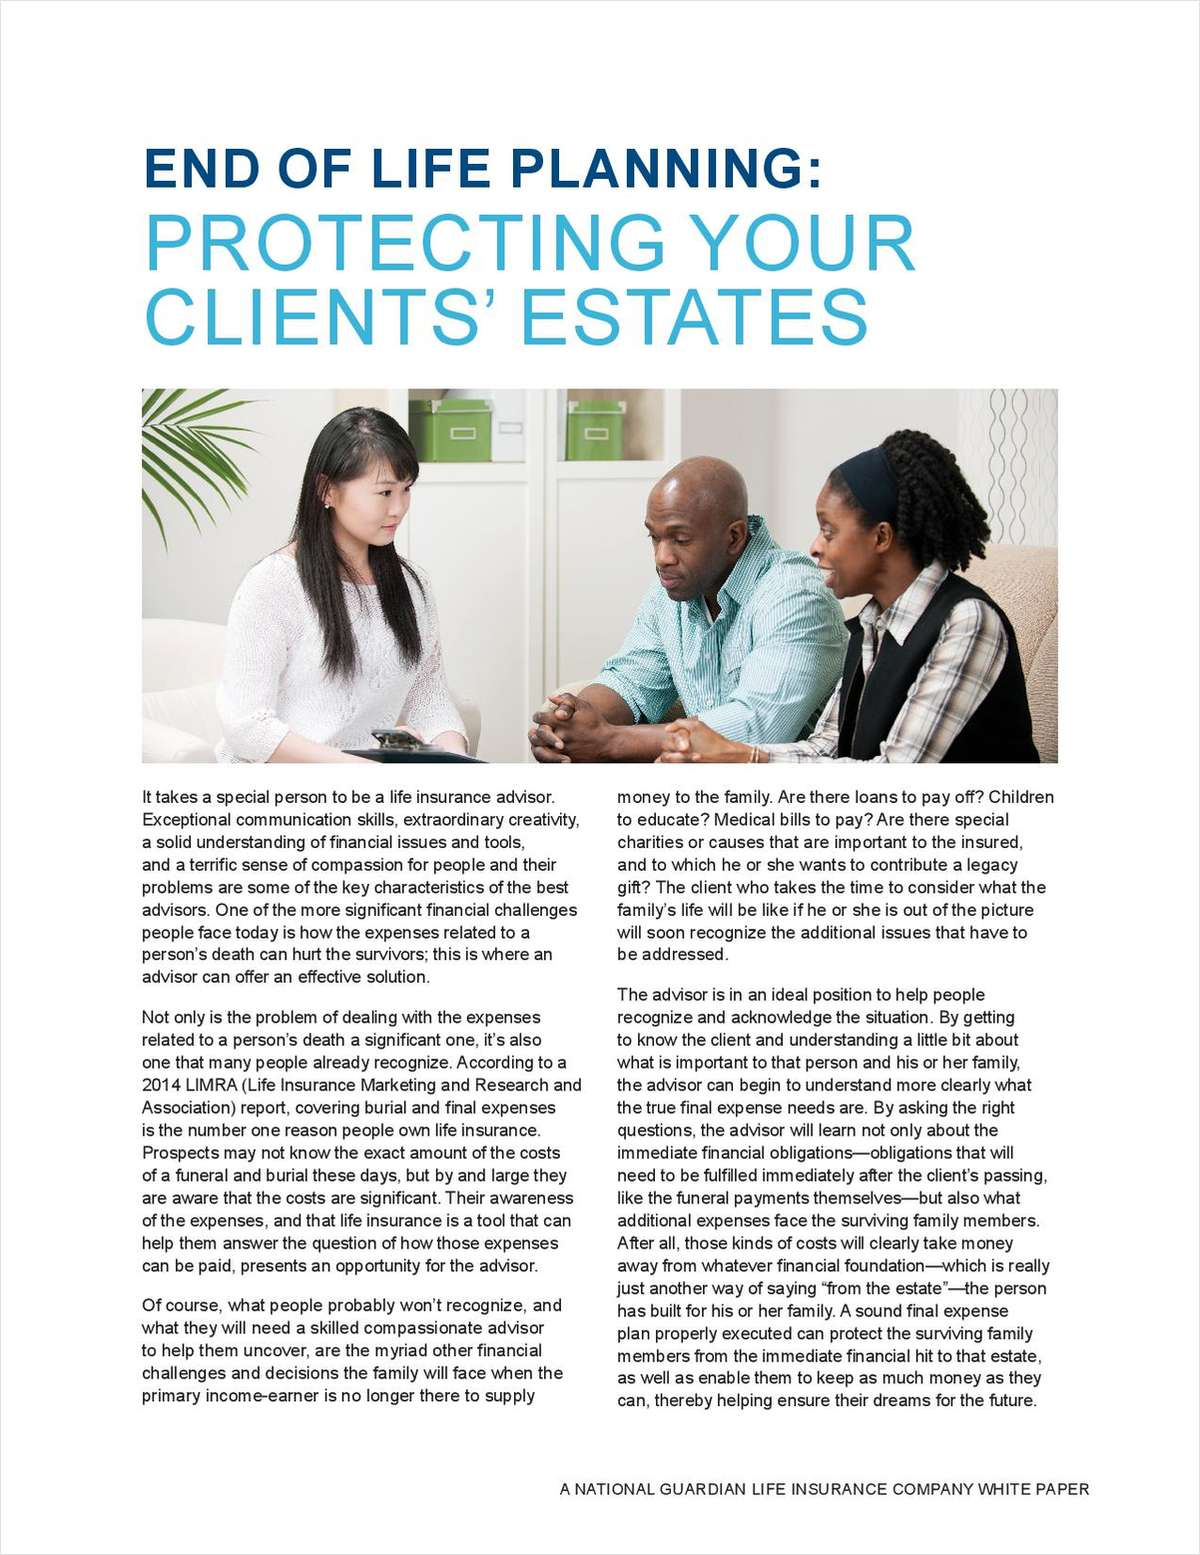 End-of-Life Planning: Protecting Your Clients' Estates